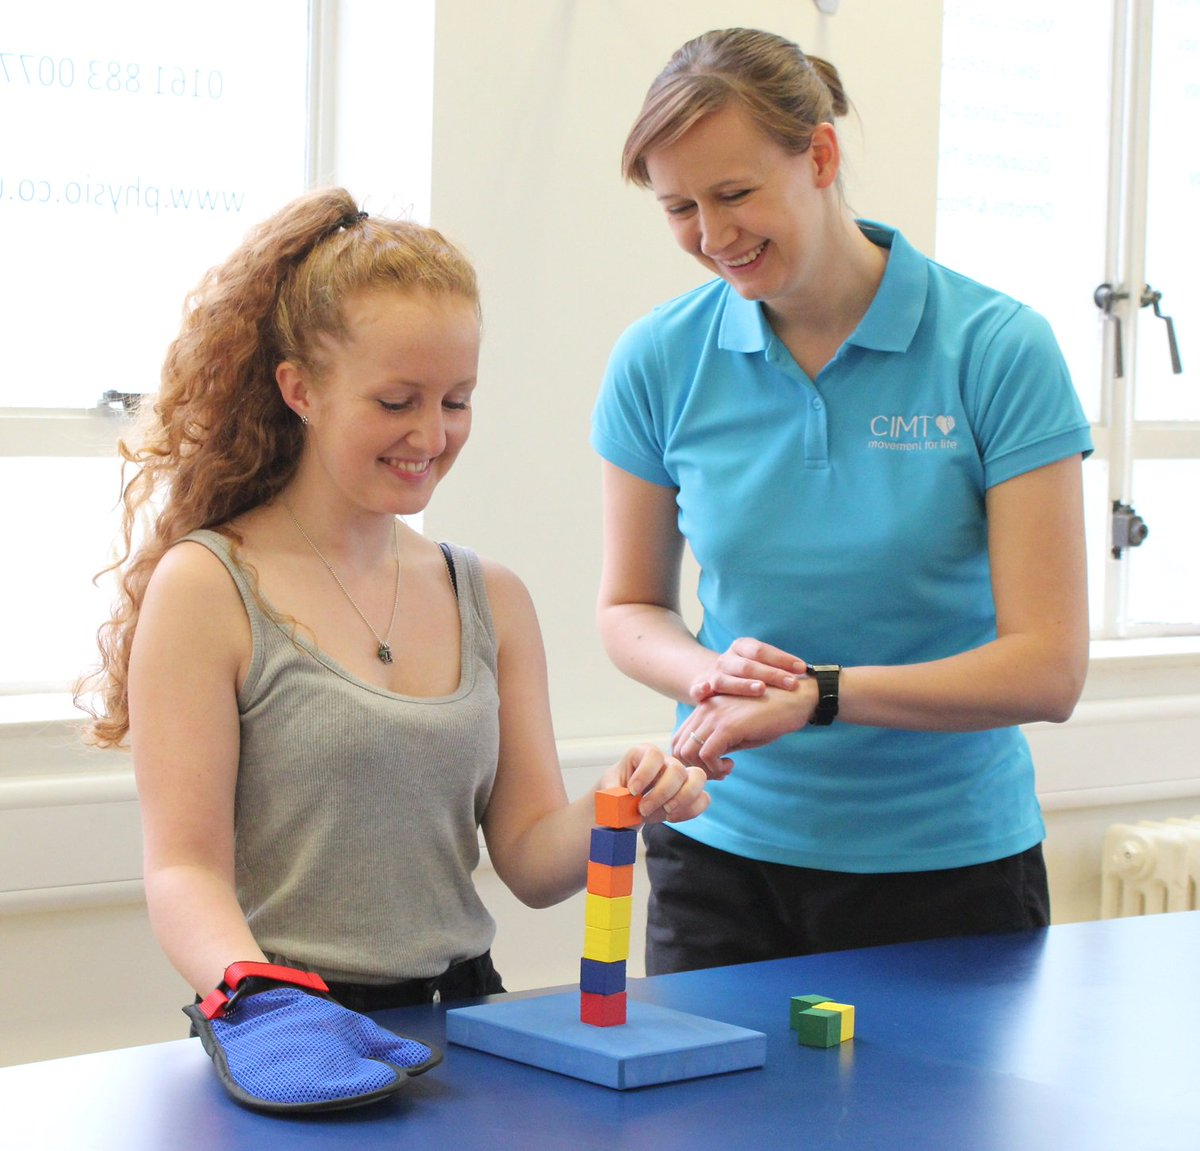 [WEB SITE] What is CIMT – Constraint Induced Movement Therapy